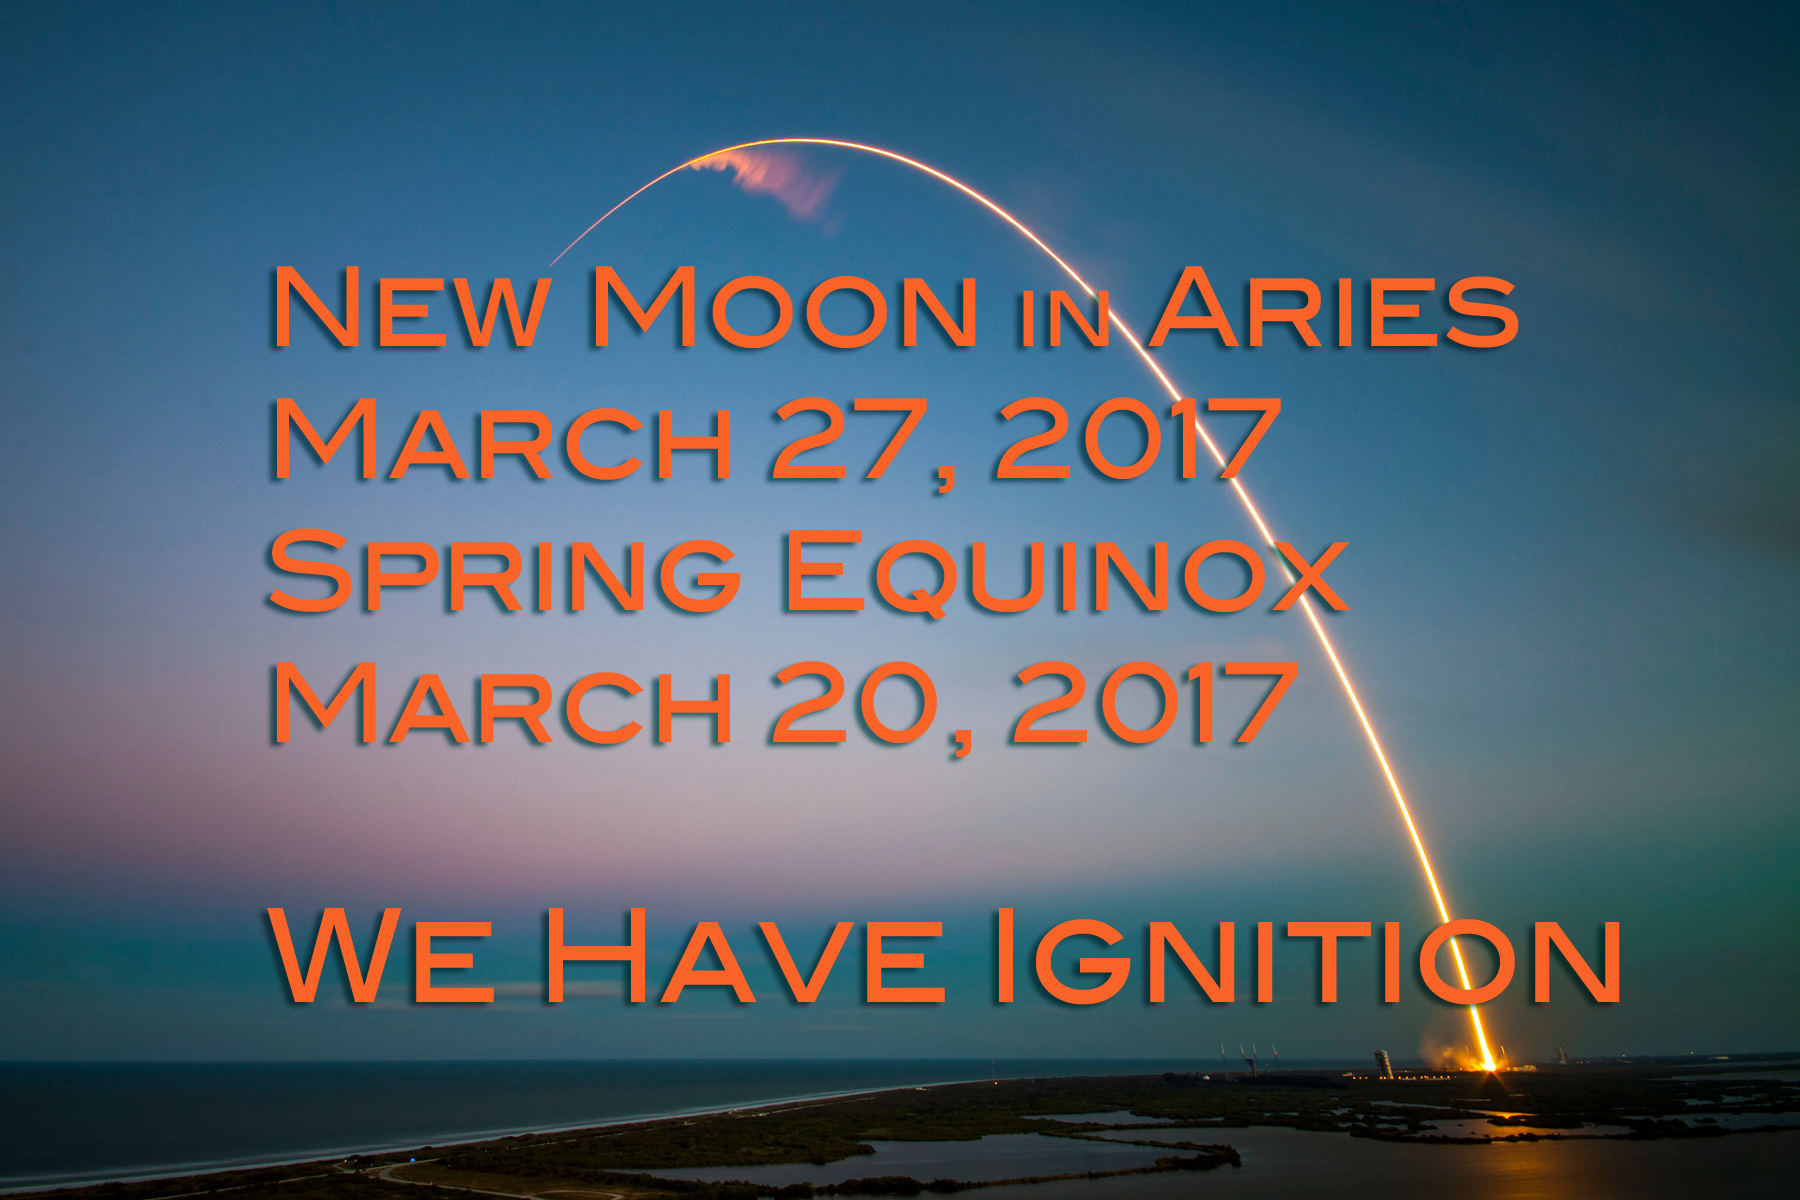 New Moon in Aries & Equinox: We Have Ignition